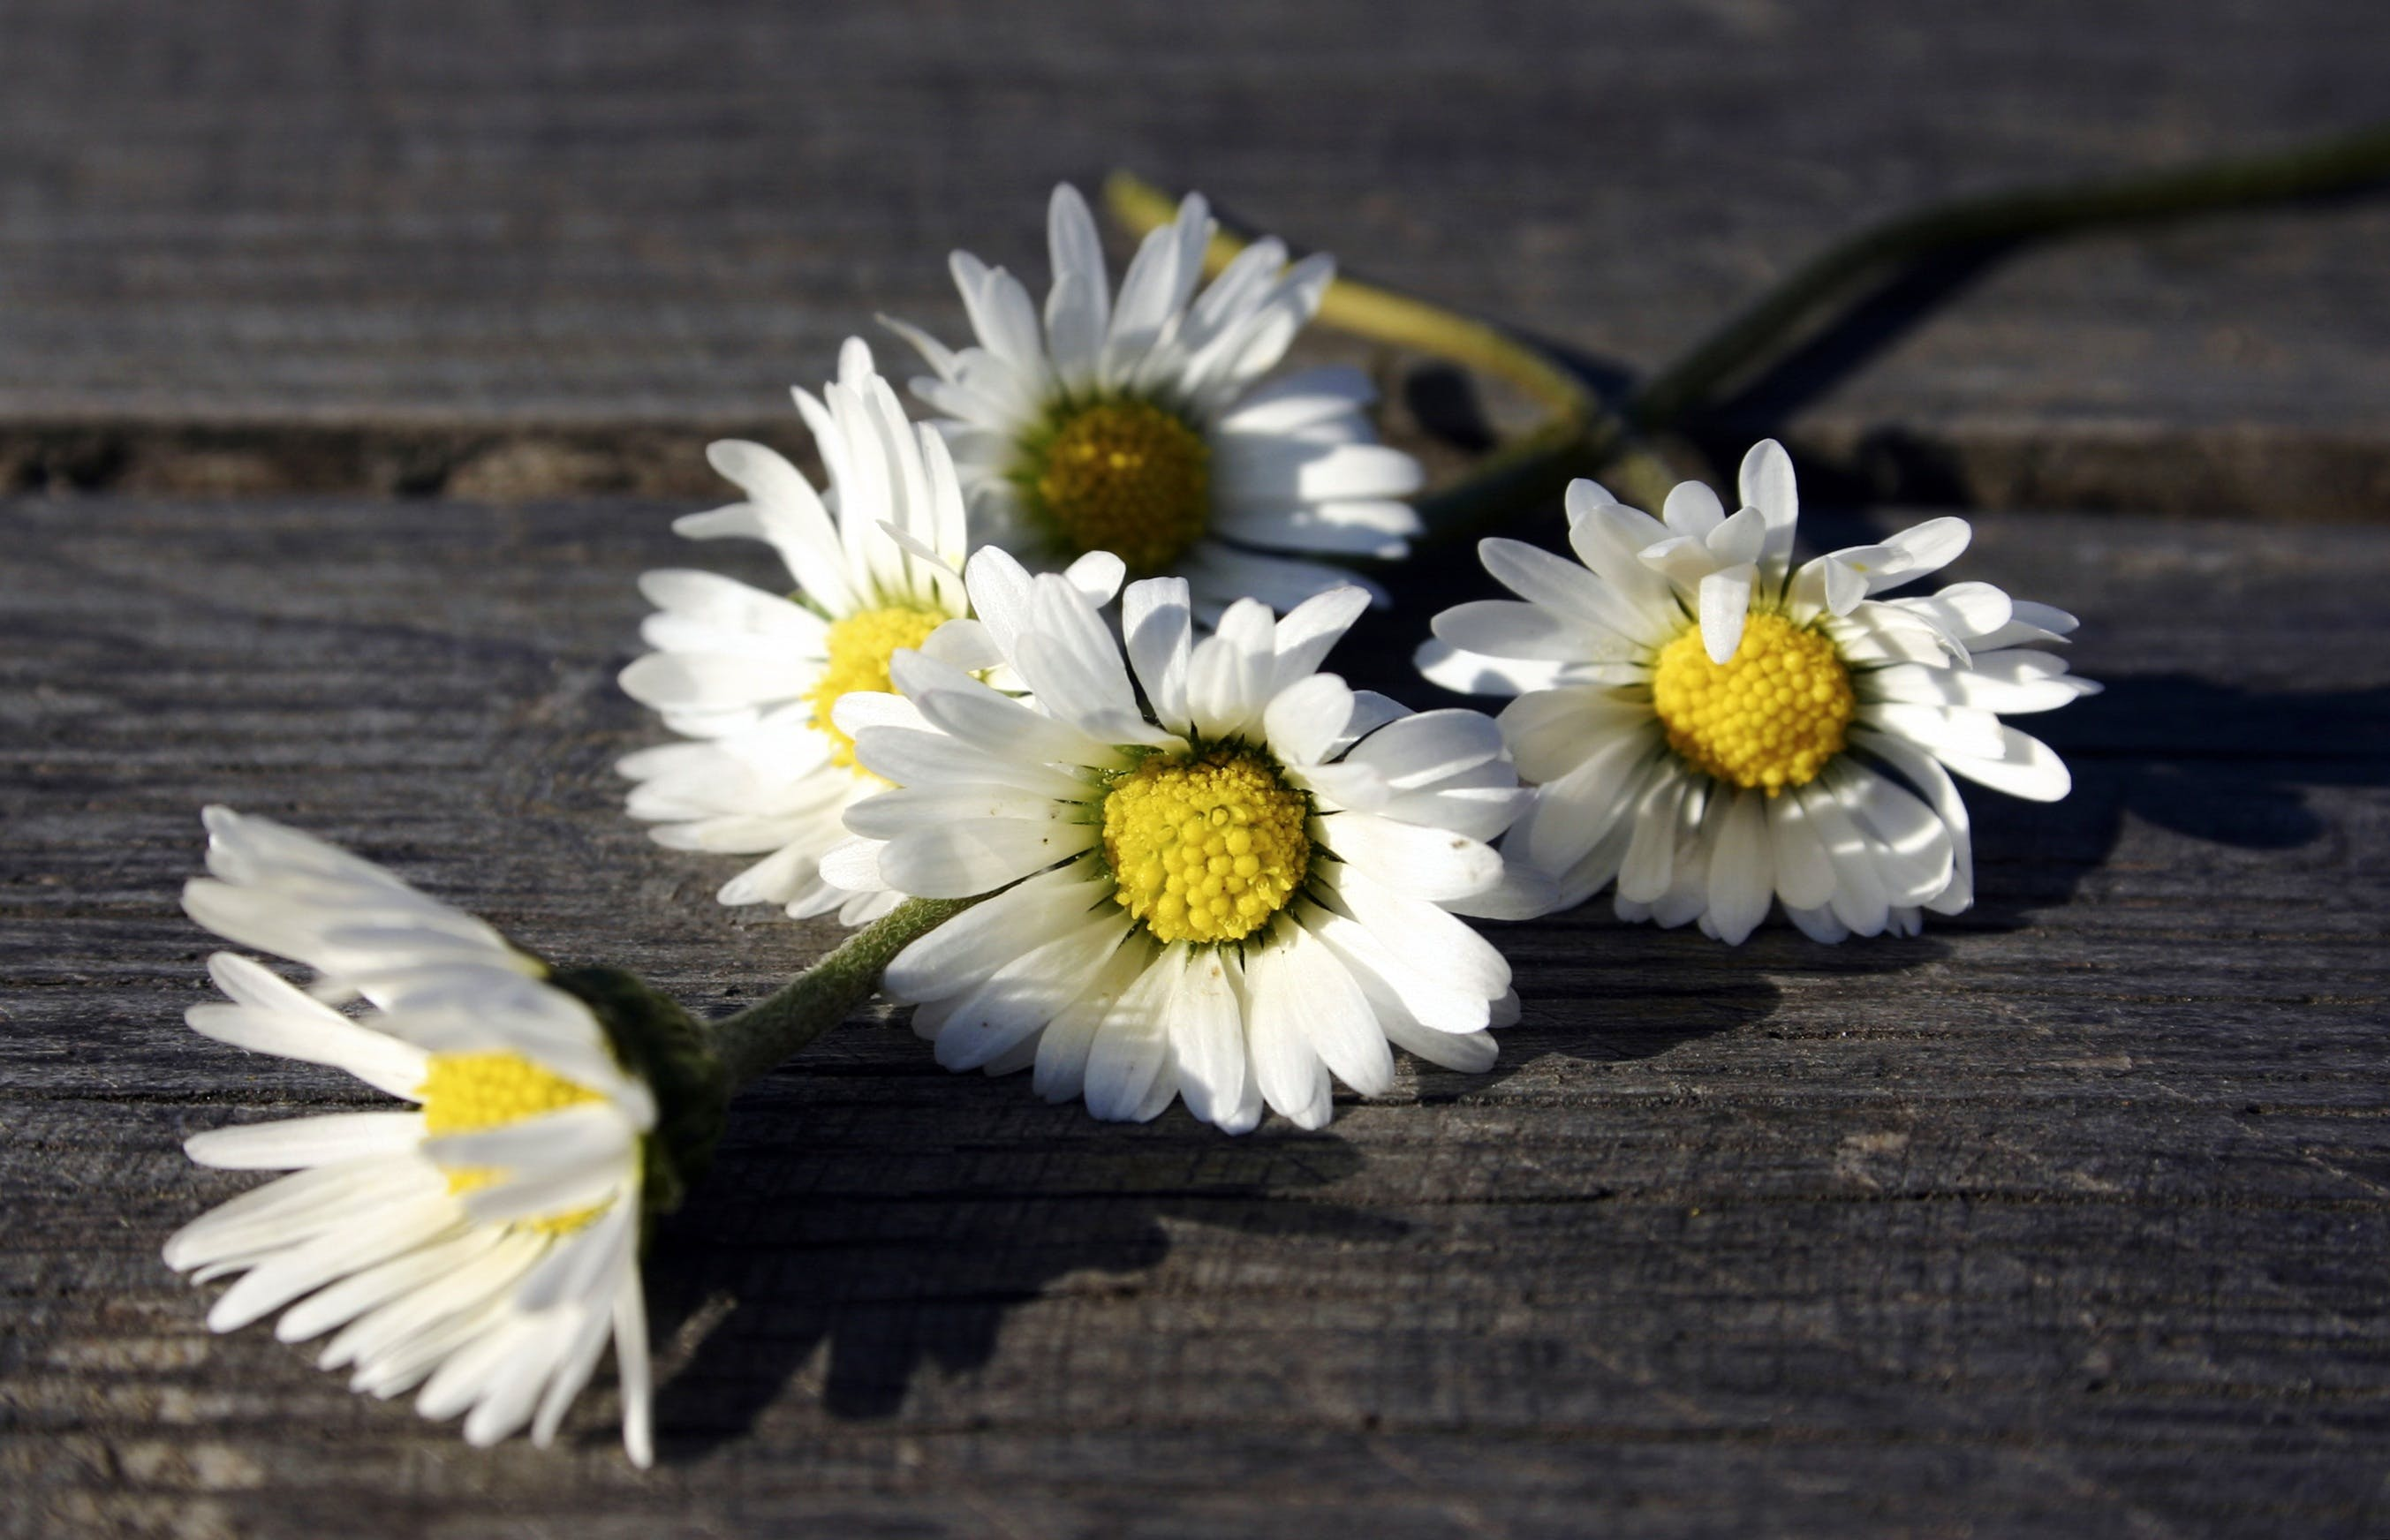 Free stock photo of wooden table, daisy, white flowers